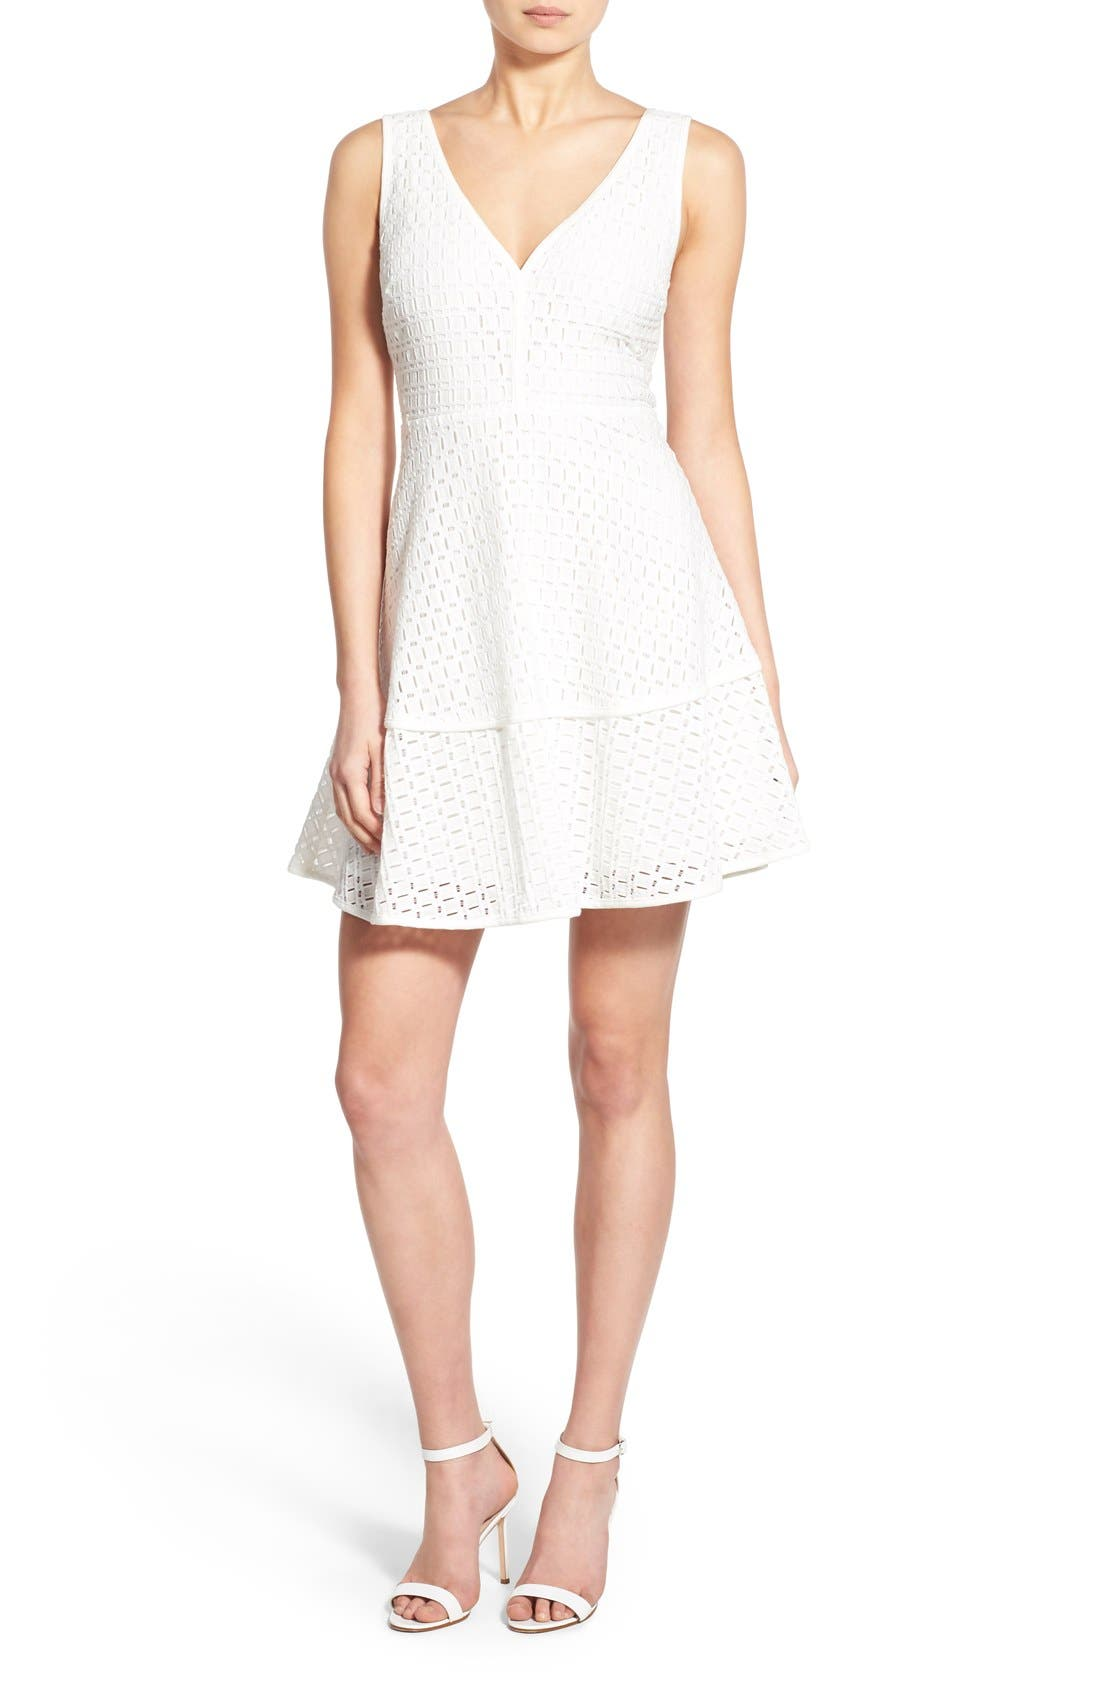 CUPCAKES AND CASHMERE 'Matilda' Eyelet Fit & Flare Dress, Main, color, 101